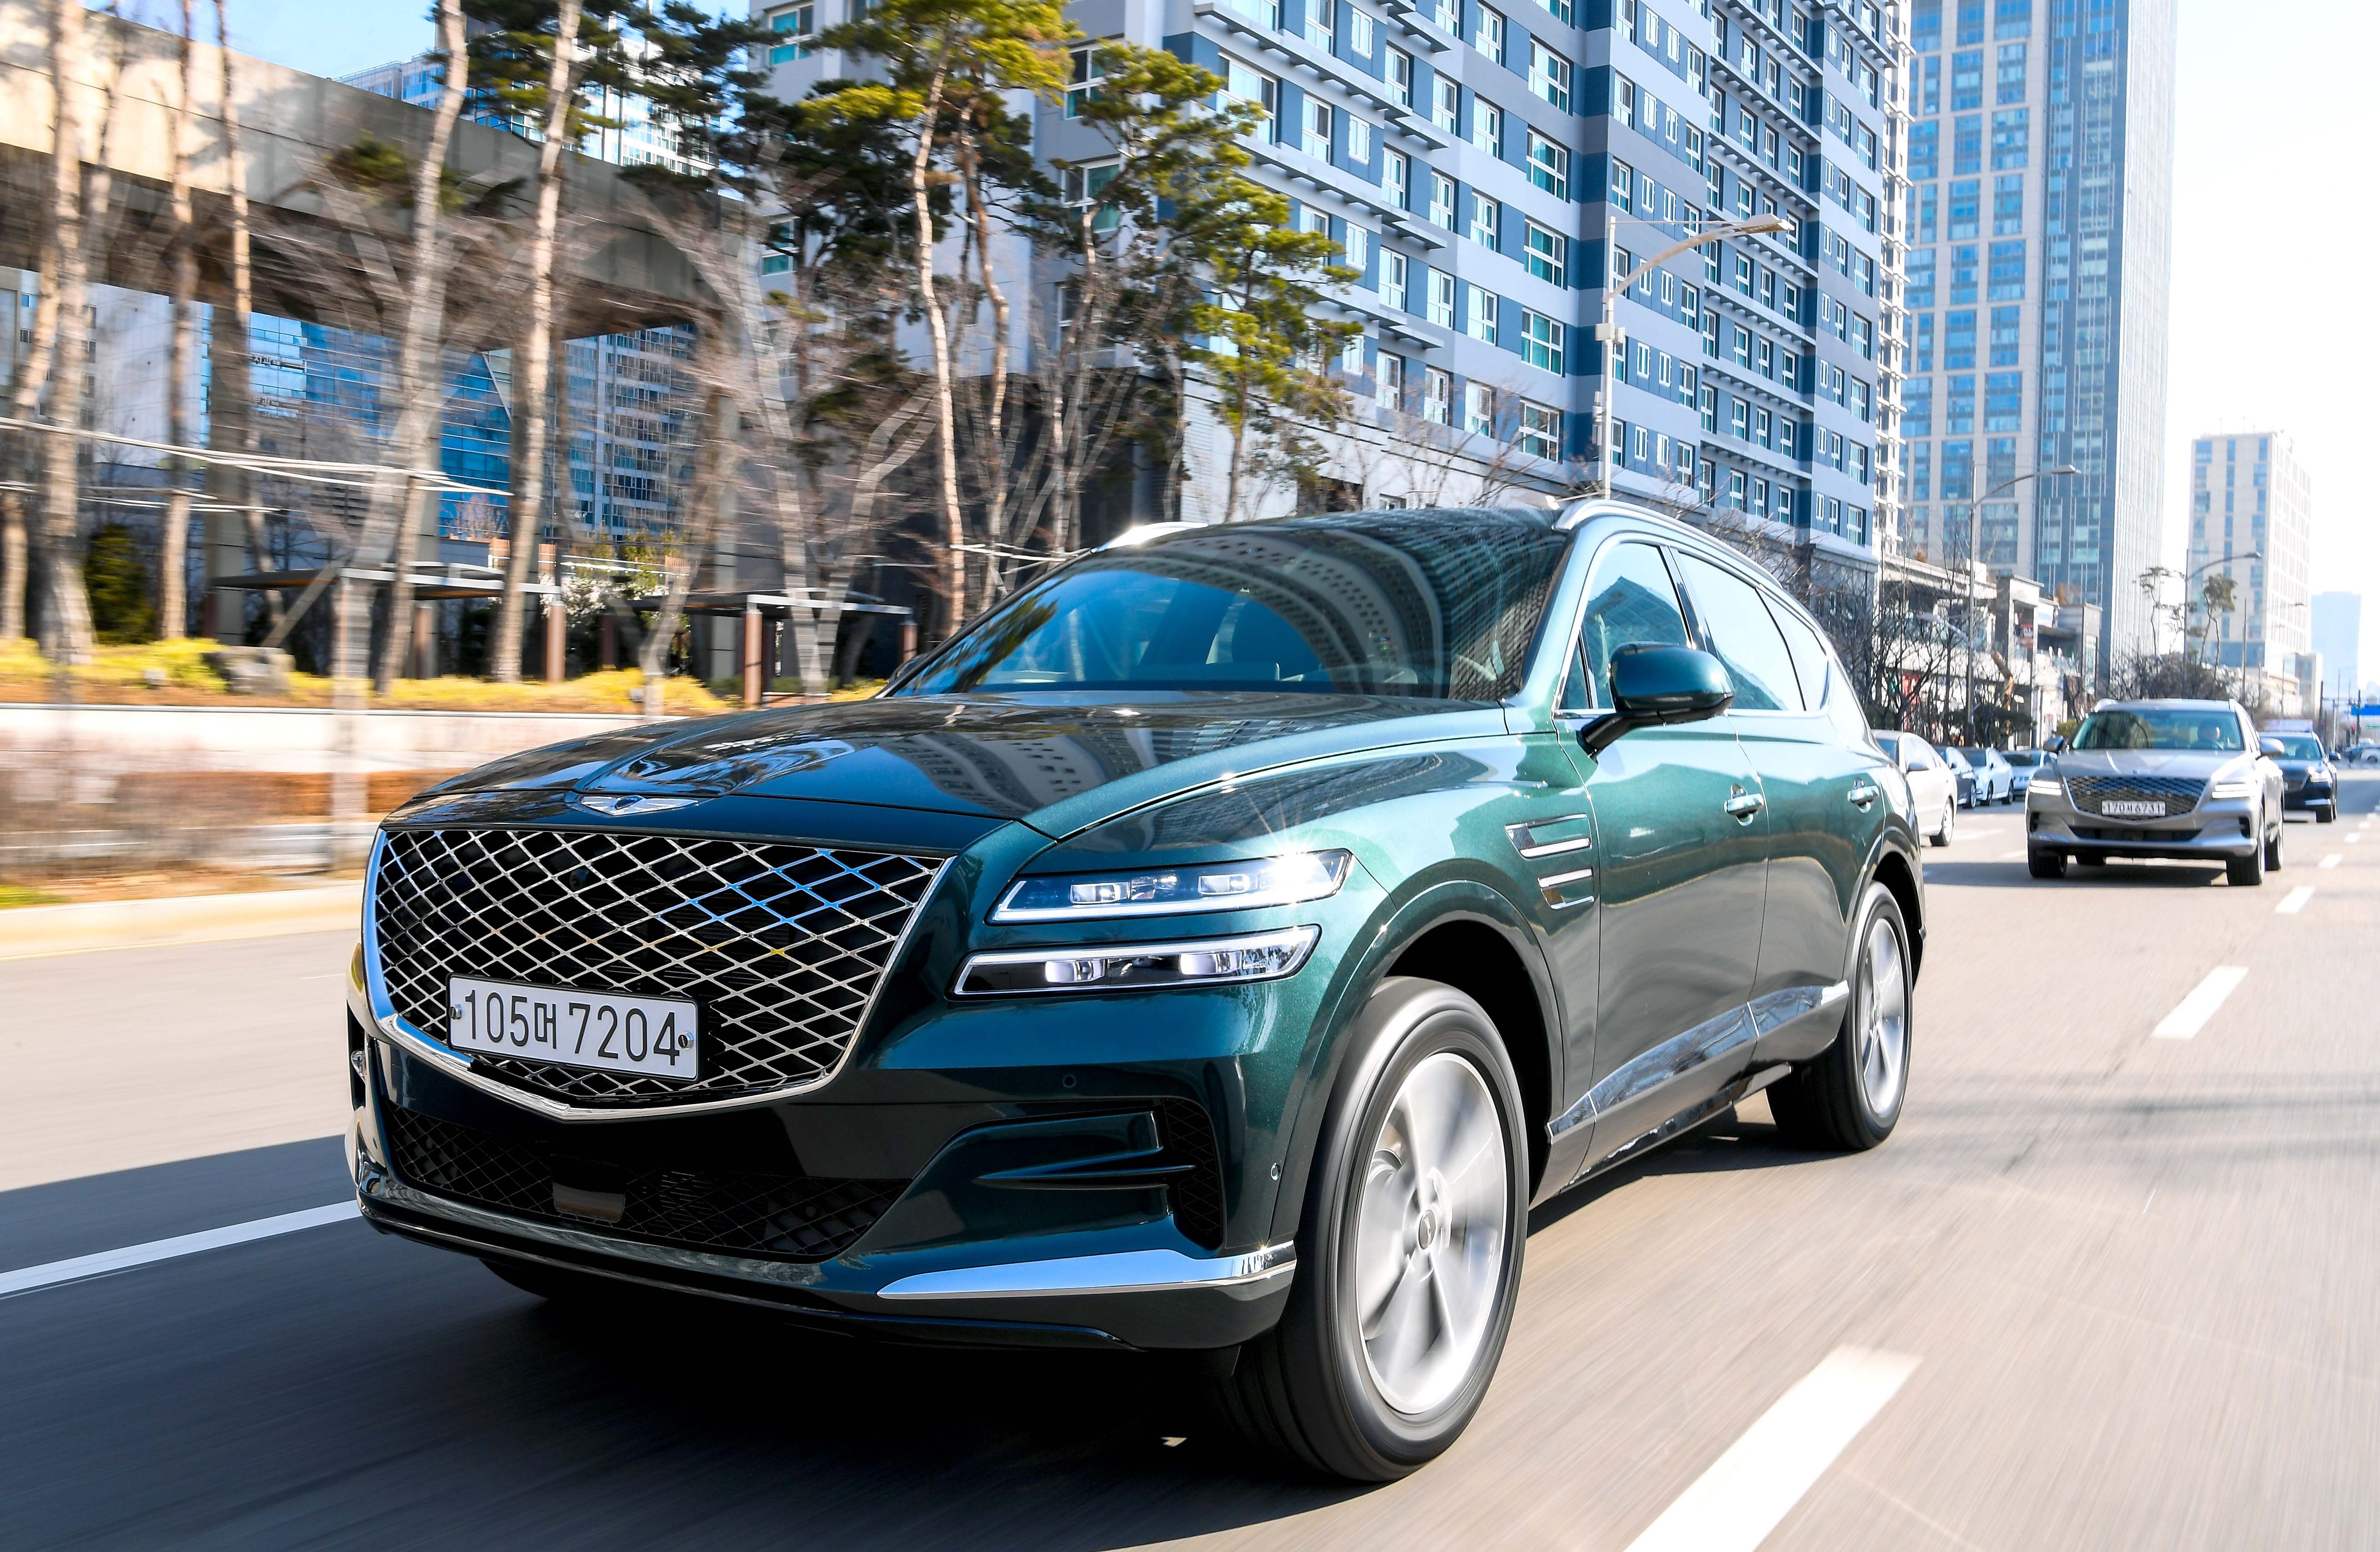 2021 Genesis Gv80 Will Change The Game Suv Review Photos